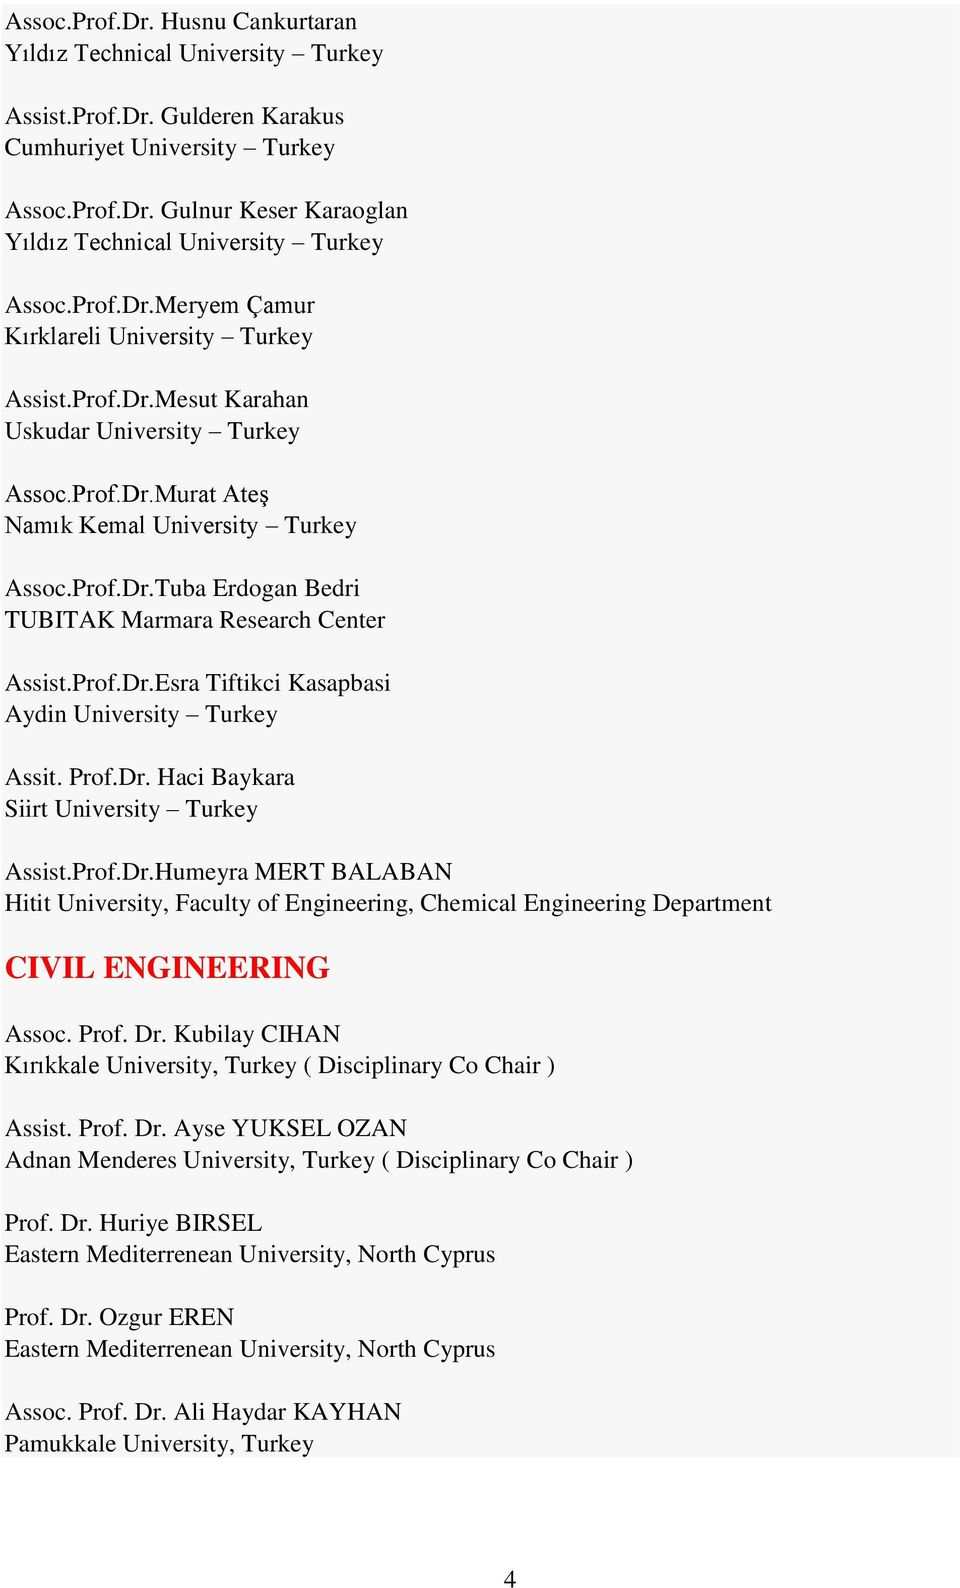 Prof.Dr.Esra Tiftikci Kasapbasi Aydin University Turkey Assit. Prof.Dr. Haci Baykara Siirt University Turkey Assist.Prof.Dr.Humeyra MERT BALABAN Hitit University, Faculty of Engineering, Chemical Engineering Department CIVIL ENGINEERING Assoc.